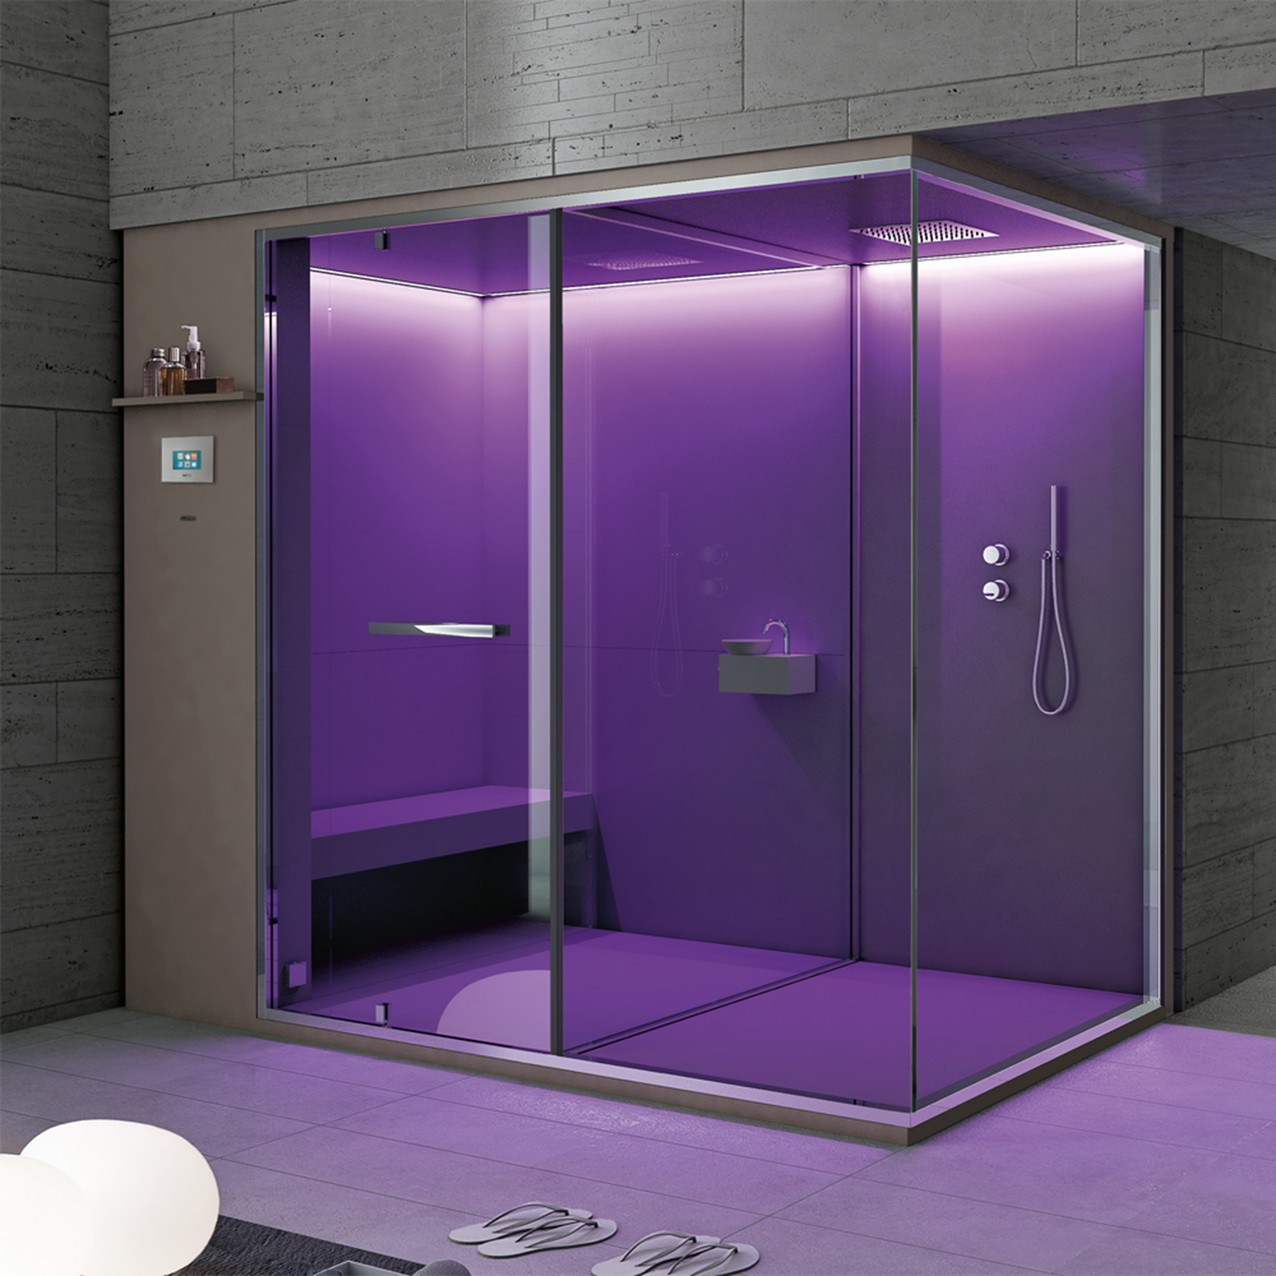 Hammam with built-in shower